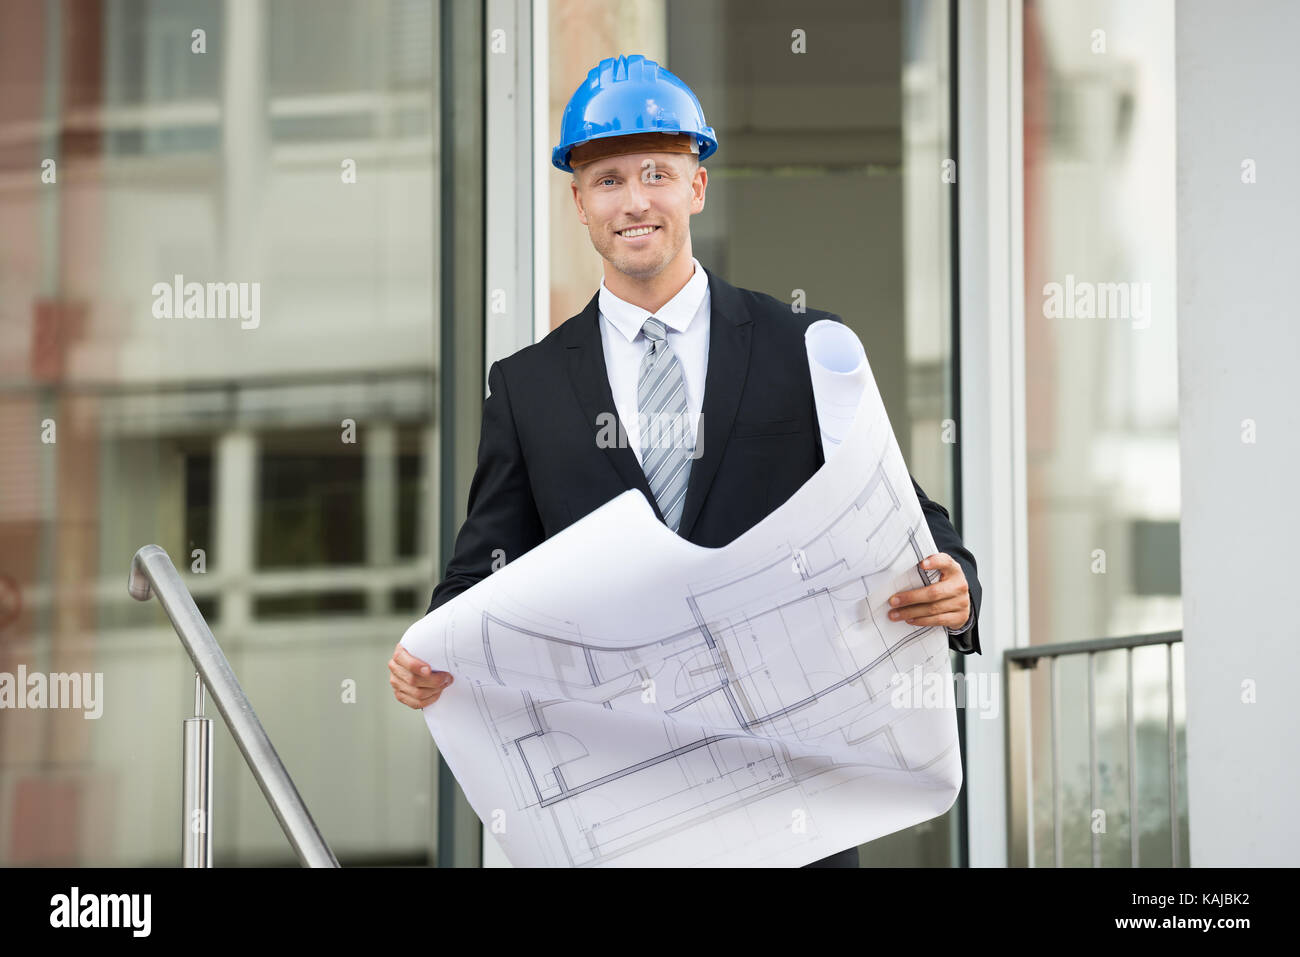 Young Engineer With Hard Hat Holding Blueprint In His Hands - Stock Image